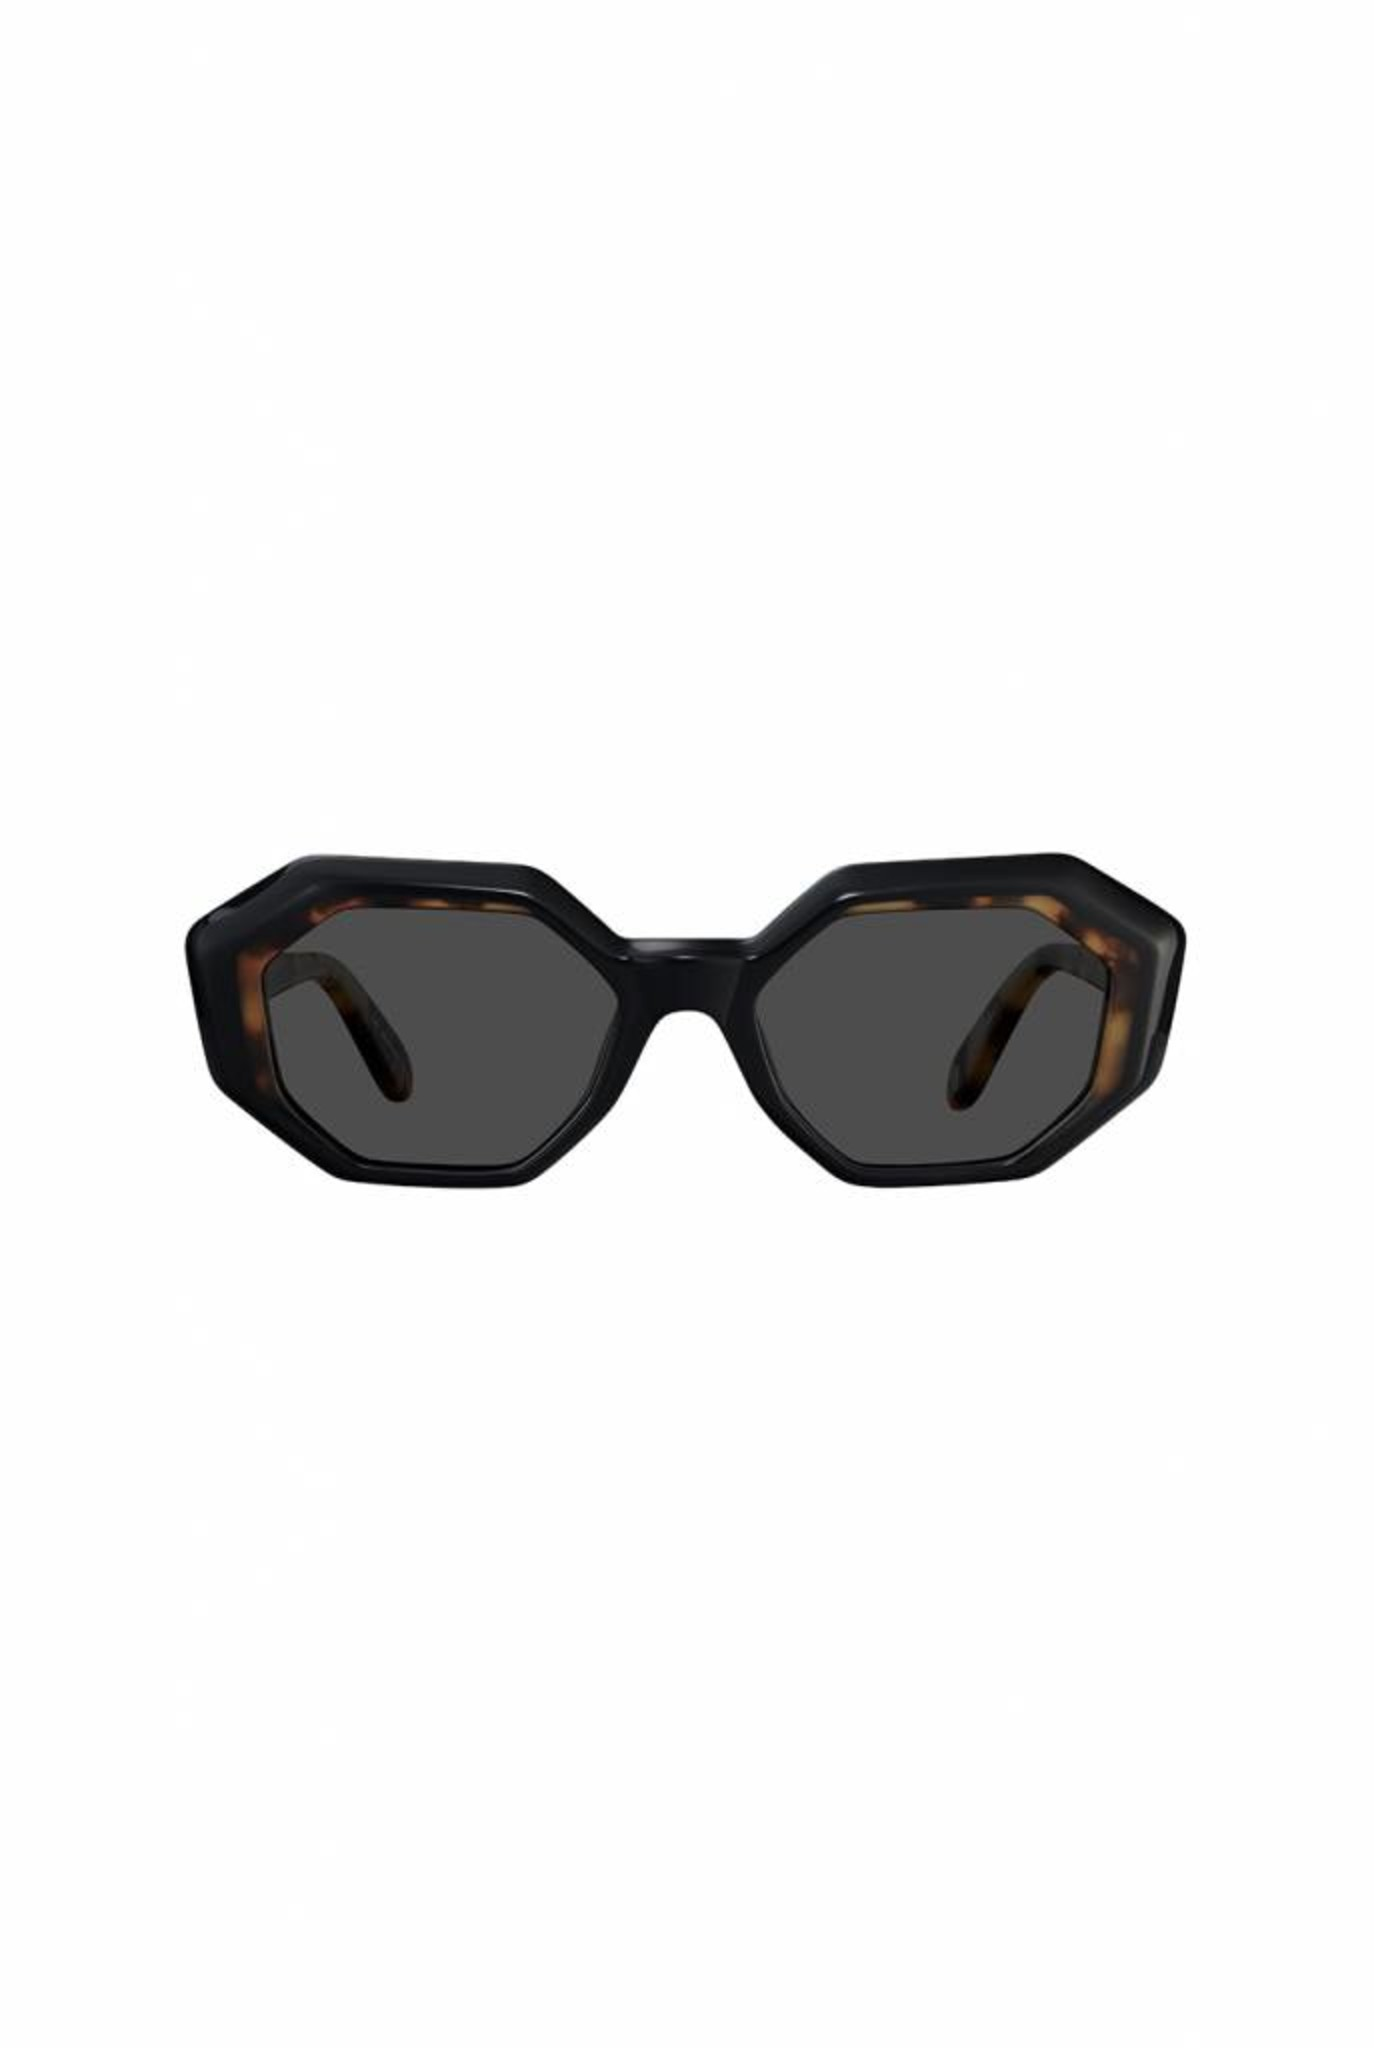 Jacqueline sunglasses black tortoise green